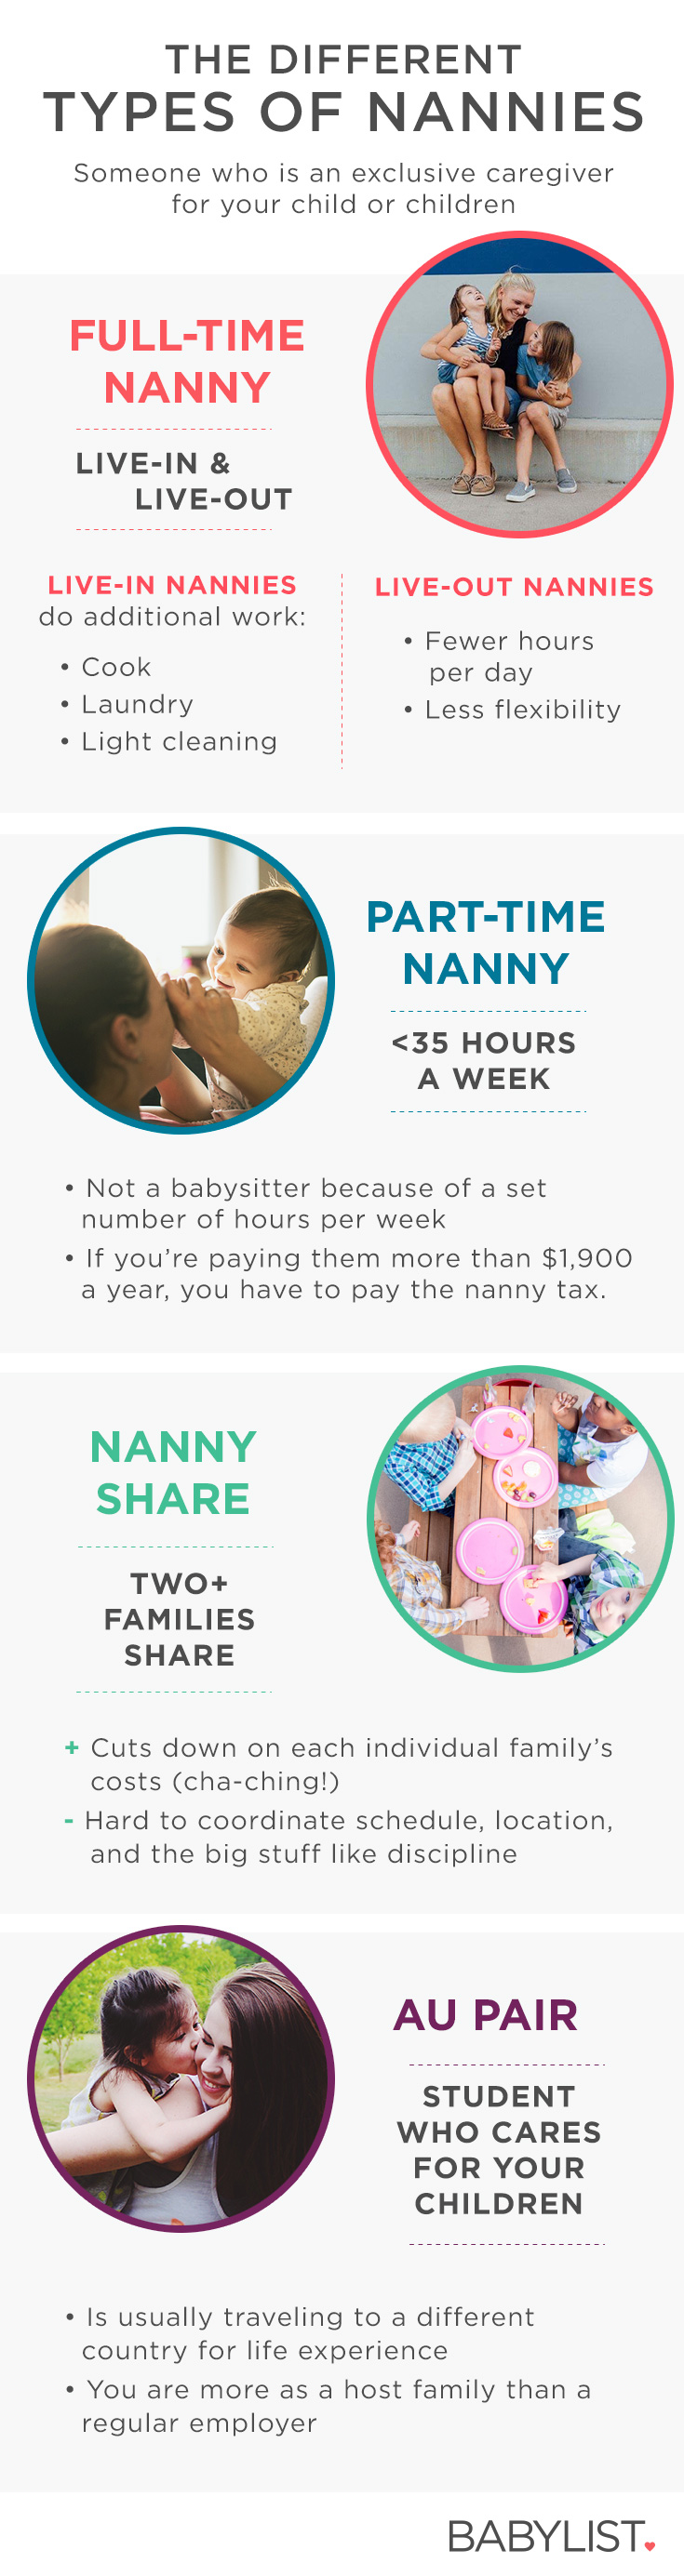 The Different Kinds of Nannies